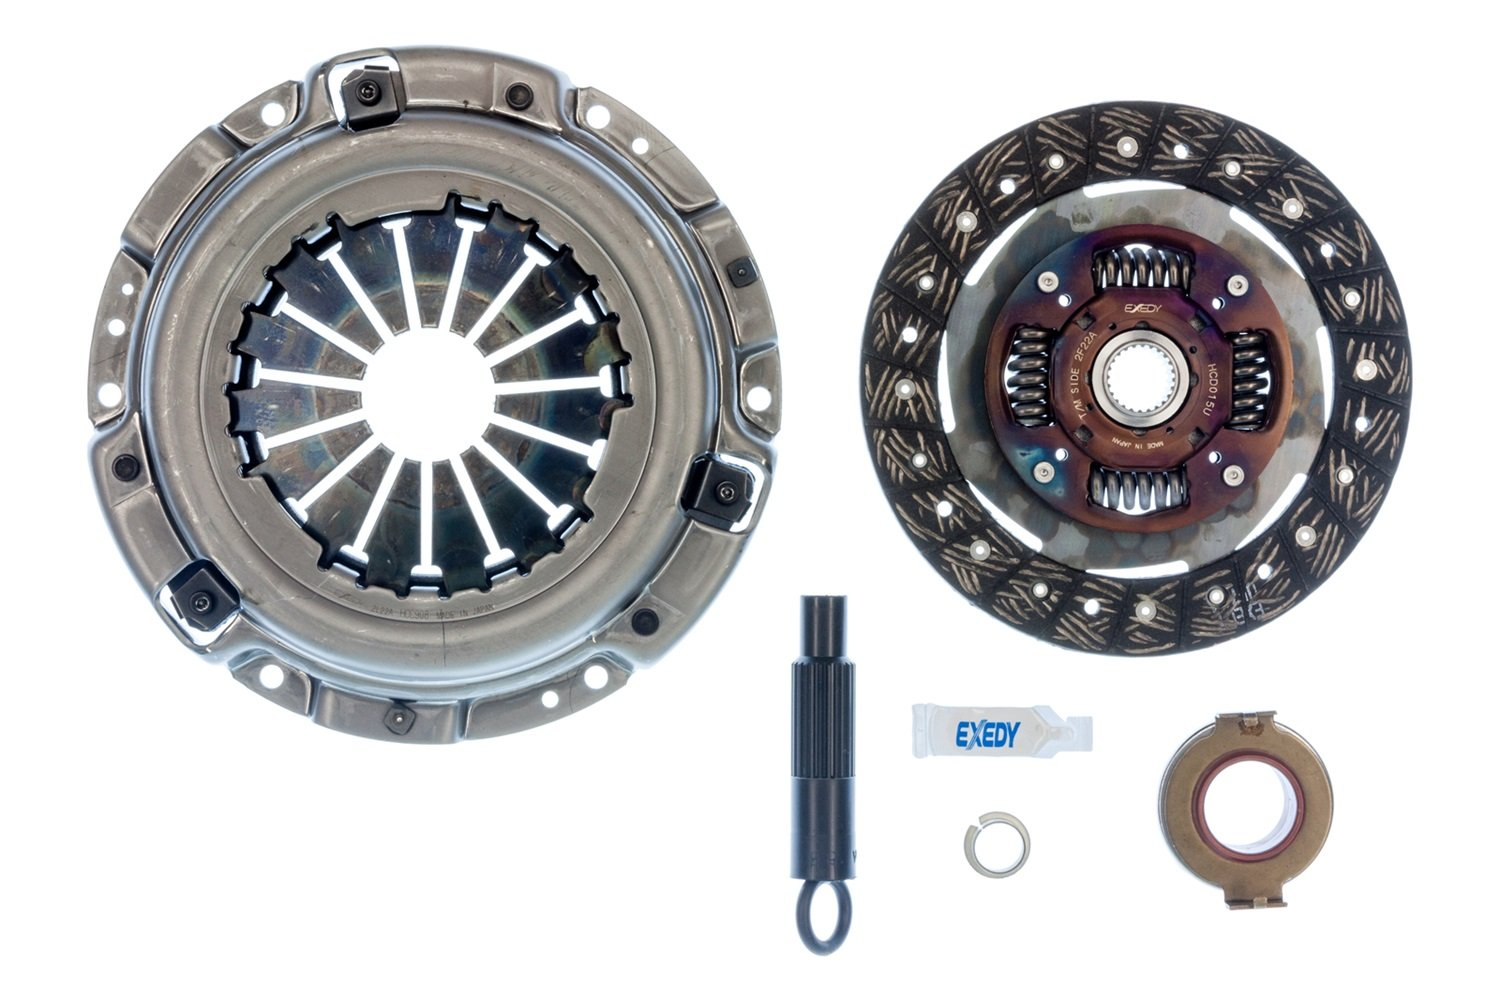 EXEDY KHC03 OEM Replacement Clutch Kit by Exedy (Image #1)